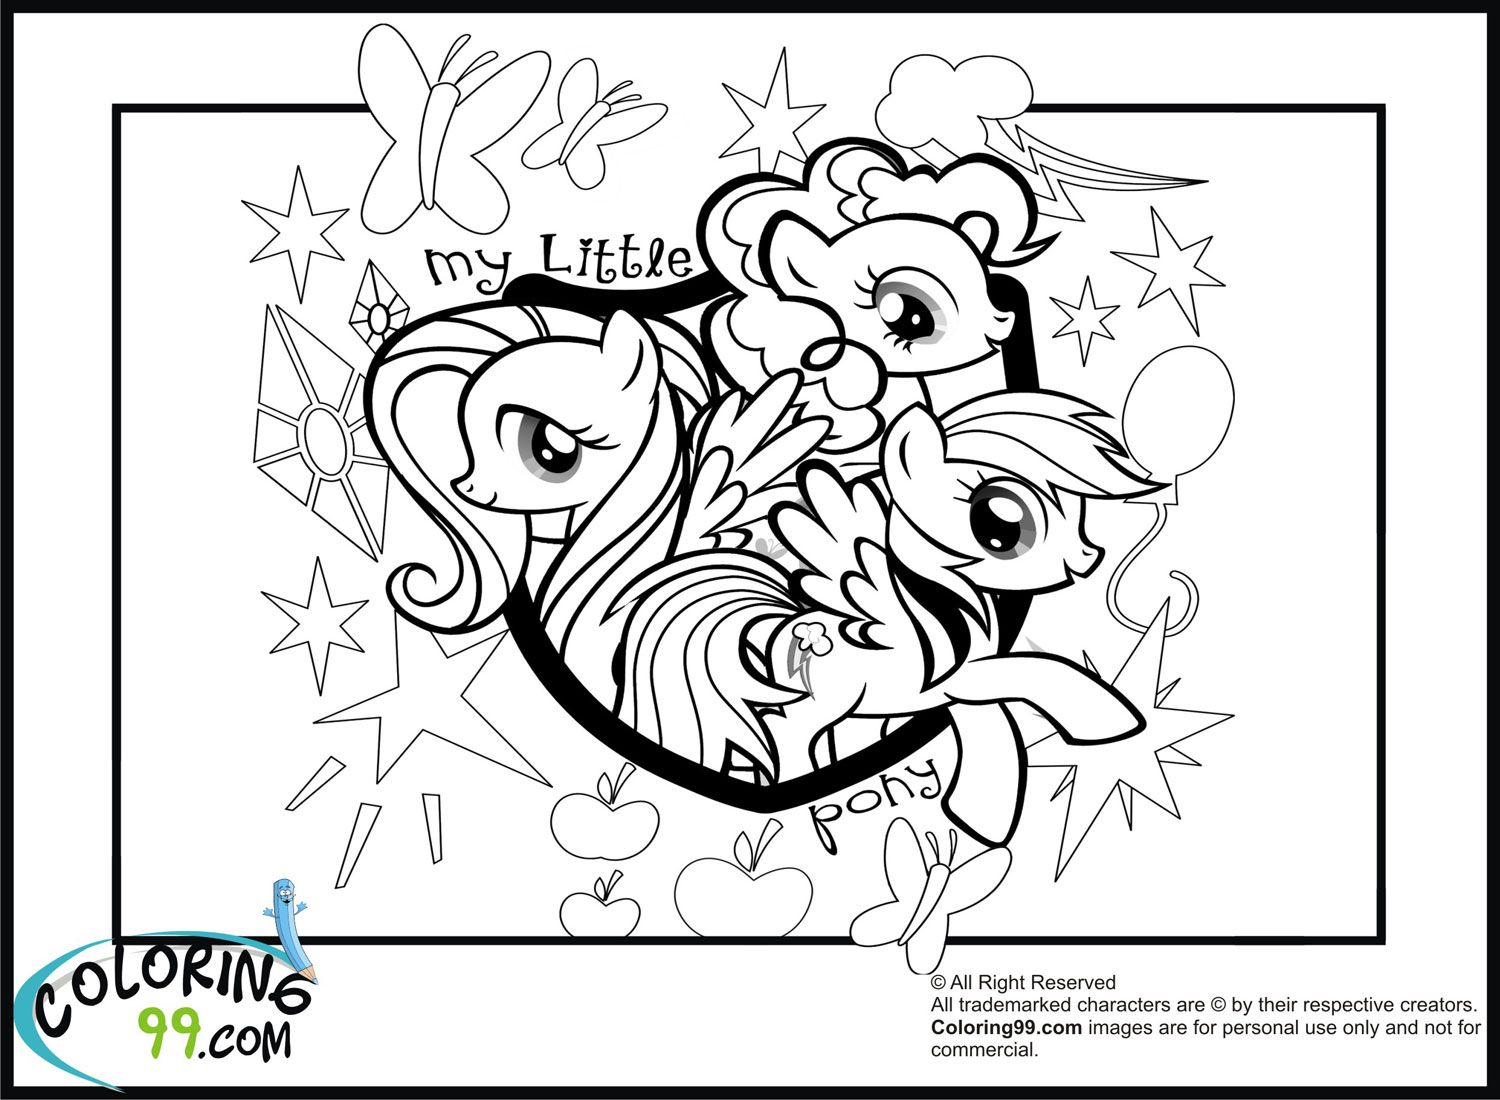 my-little-pony-coloring-pages-to-print.jpg (1500×1100) | Coloring ...